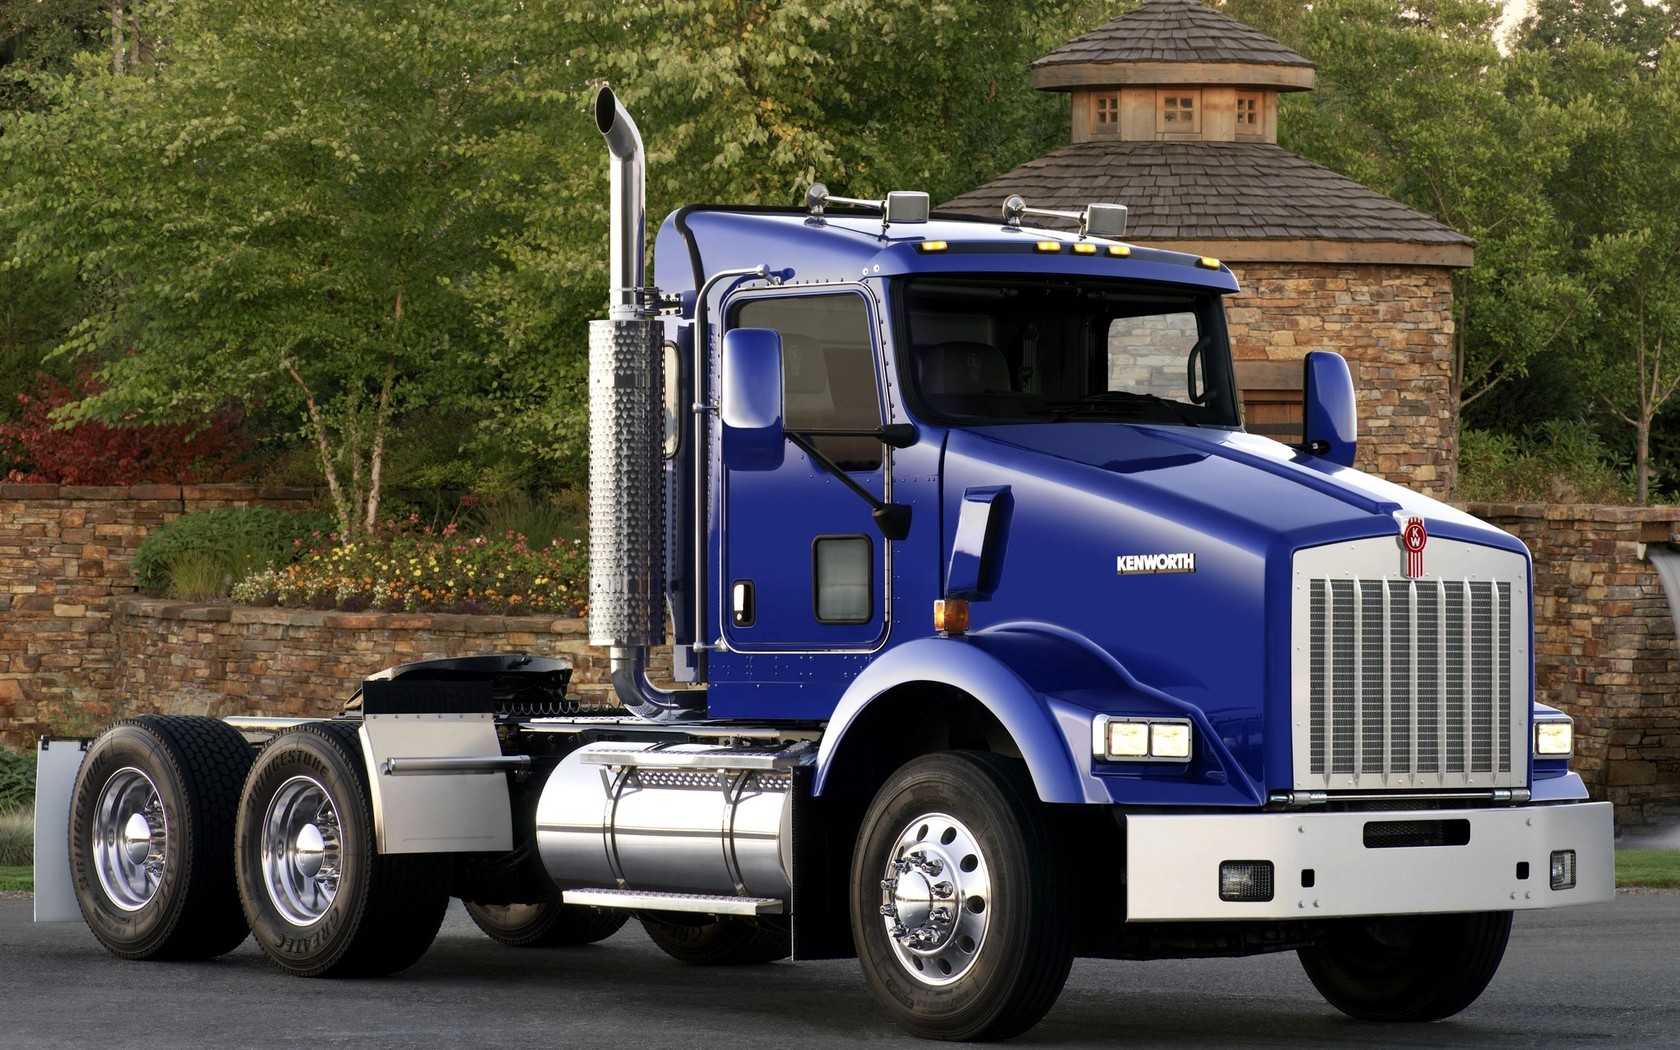 Kenworth car kenworth street tree truck 1680x1050